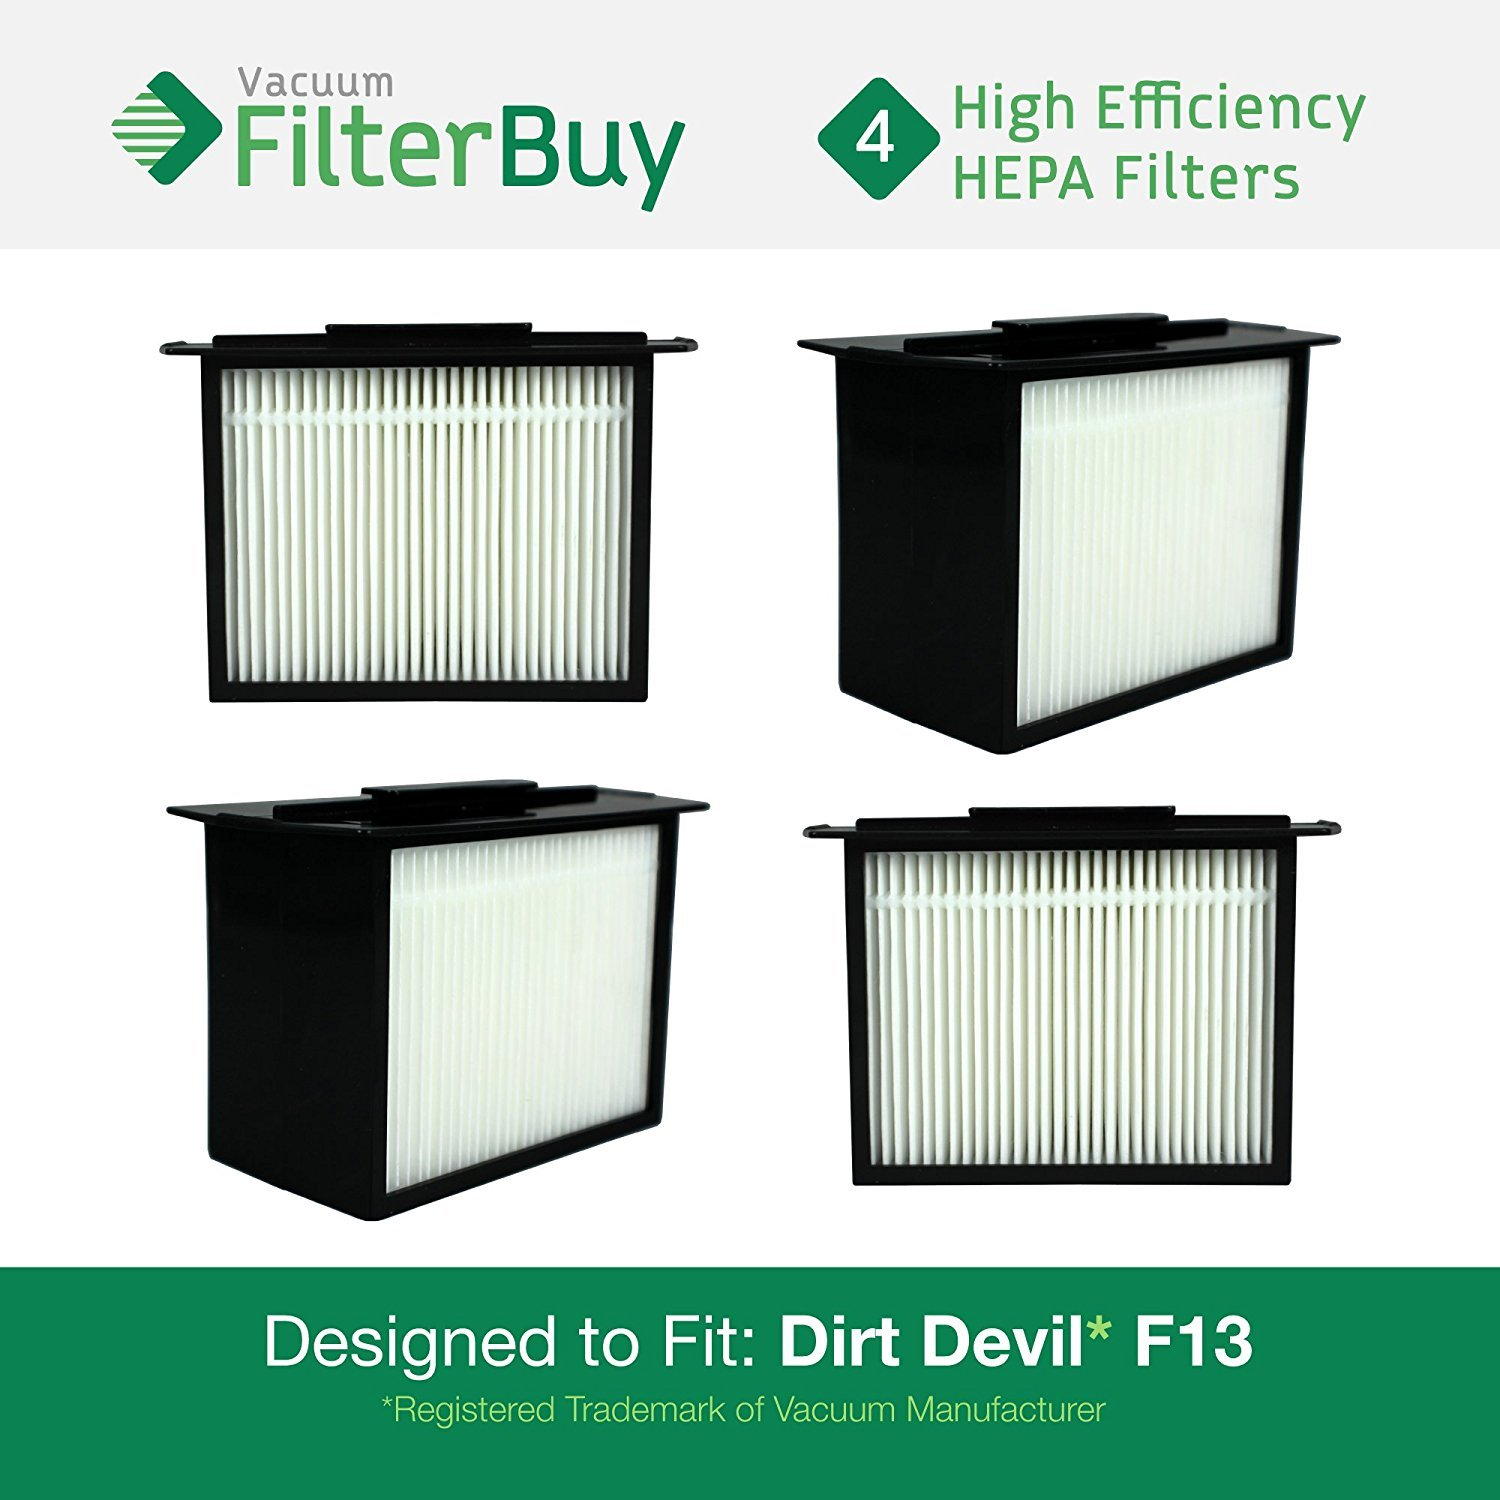 4 - Dirt Devil F-13 (F13) HEPA Replacement Filters, Part # 3LK0540001. Designed by FilterBuy to fit Dirt Devil Reaction Dual Cyclonic, Reaction All-Surface, Reaction Fresh and Action Vacuum Cleaners LEPAC7536